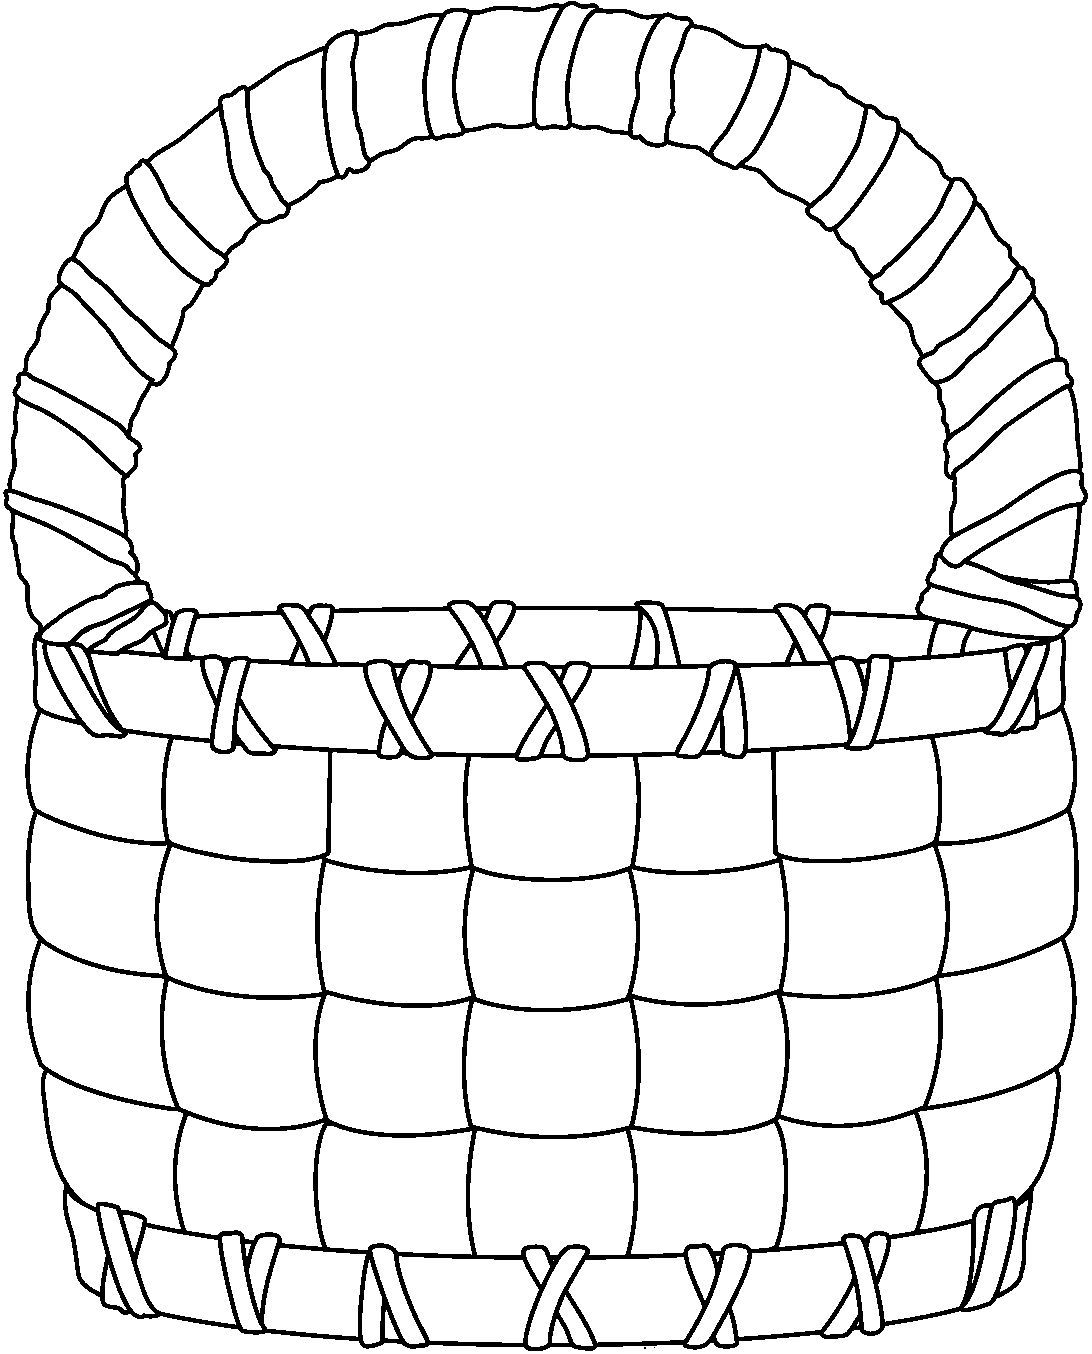 Picture of basket black and white clipart black and white stock Basket black and white clipart 3 » Clipart Portal black and white stock